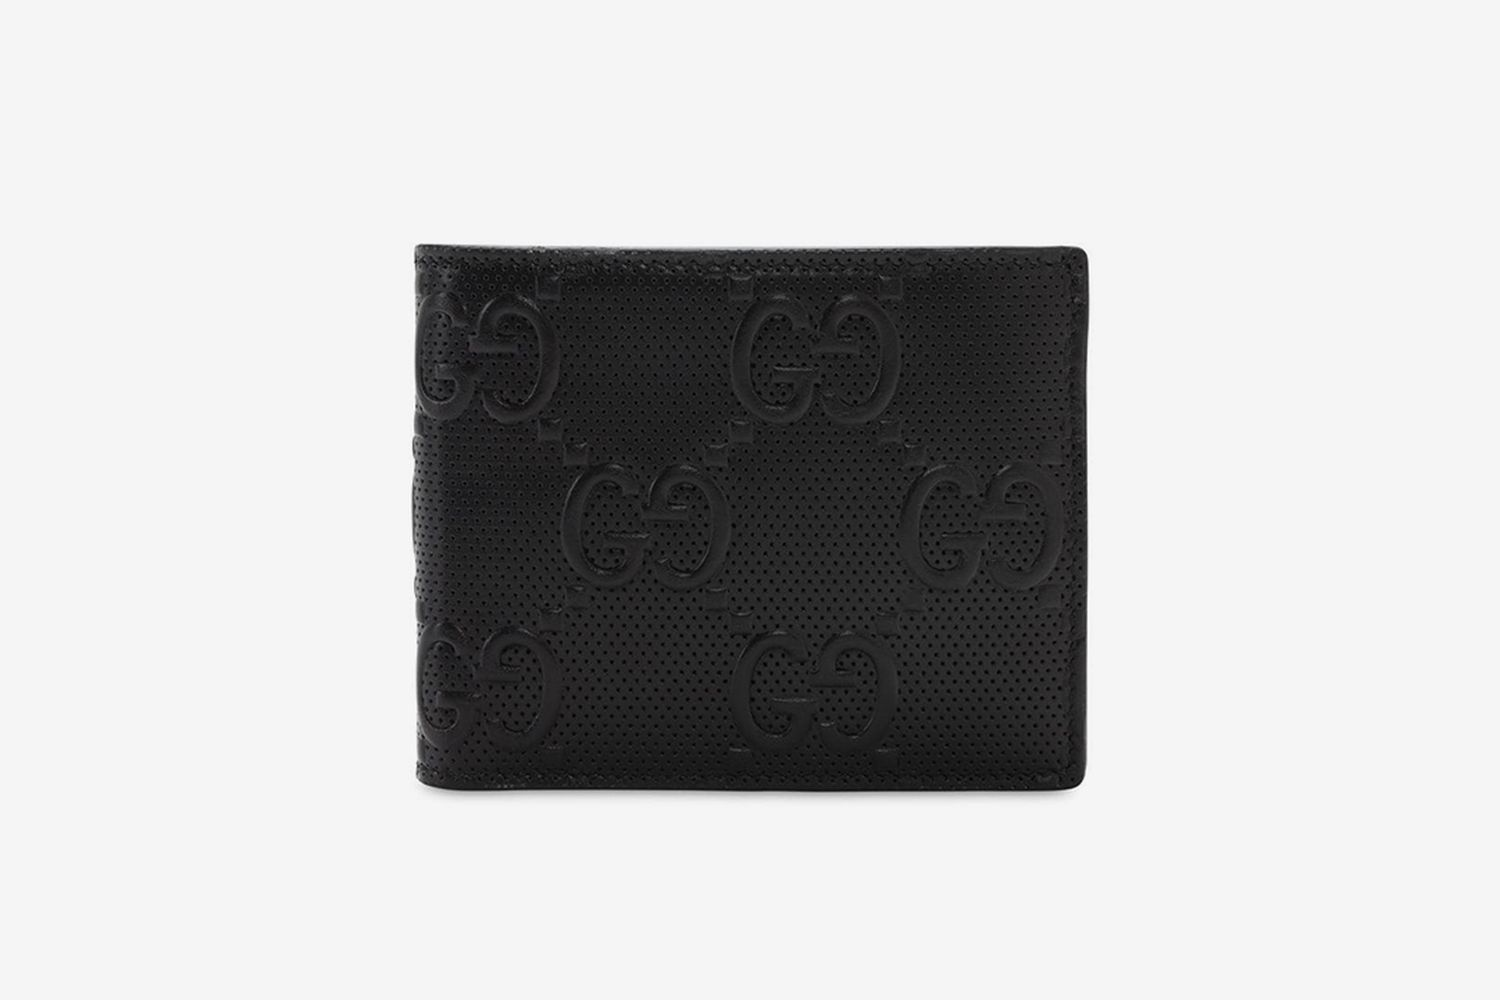 GG Debossed Leather Wallet